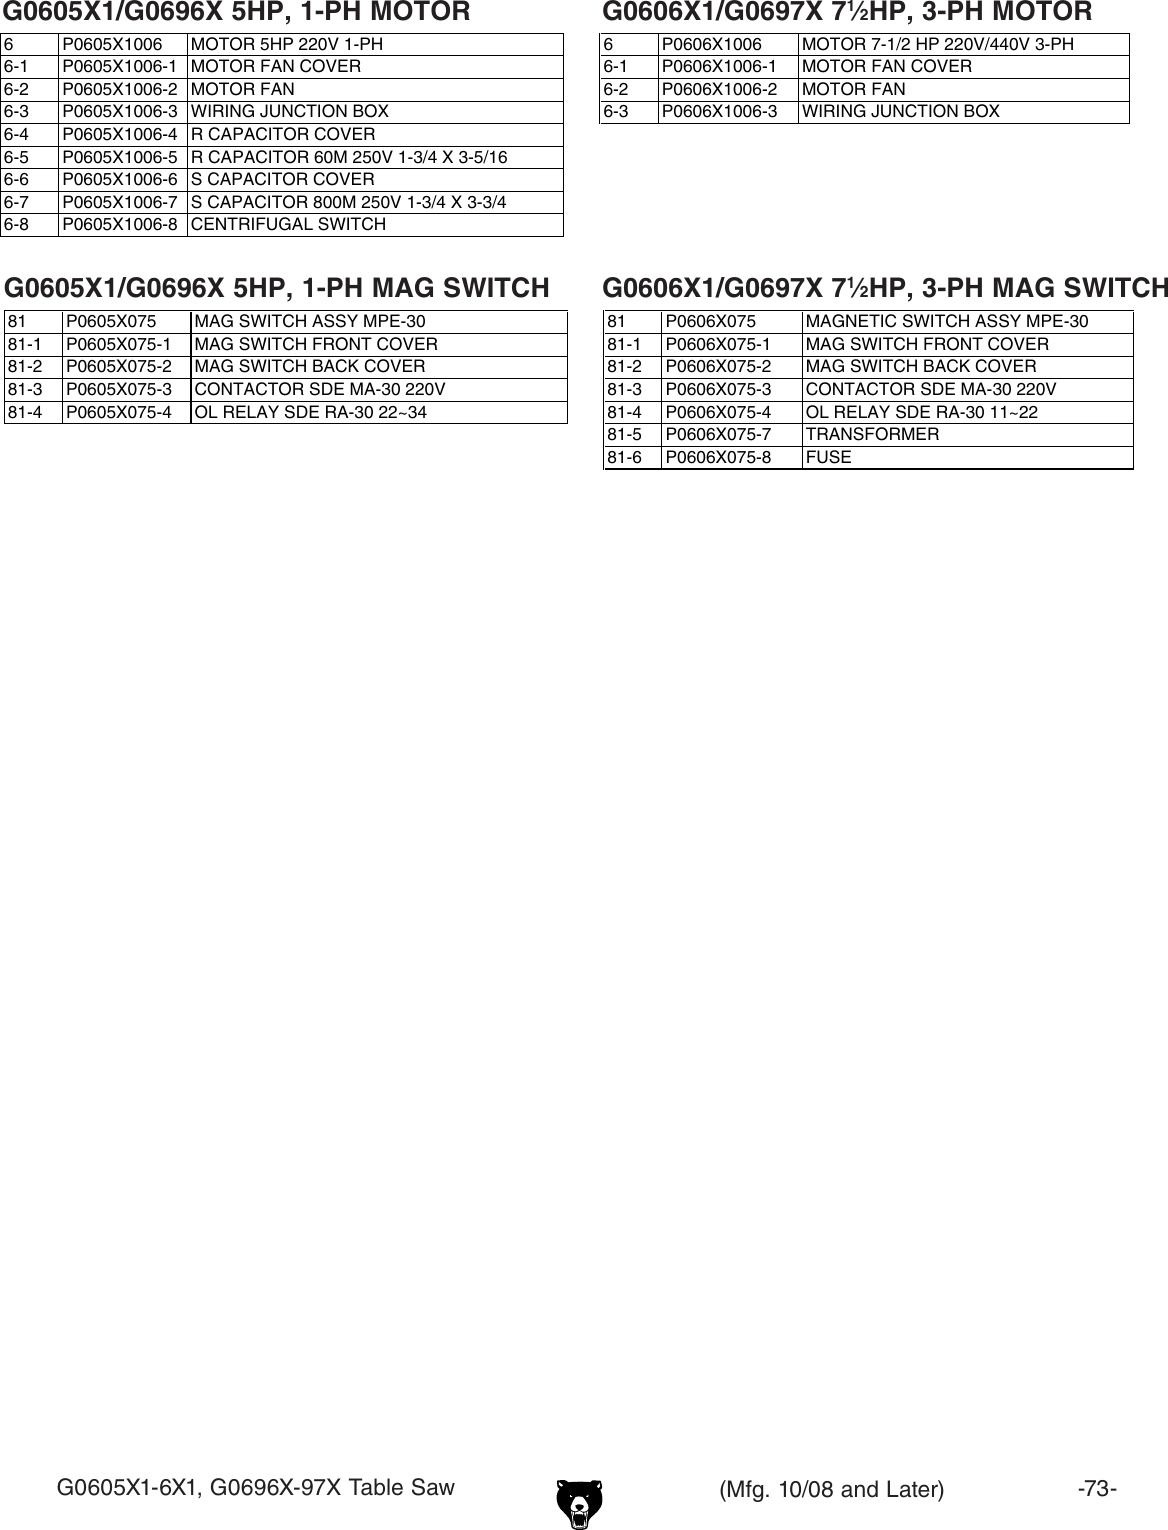 Grizzly G0696x1 97x G0605x1 Manual 2279 User To The 4cf7a5fa D753 Table Saw Wiring Diagram Page 3 Of 12